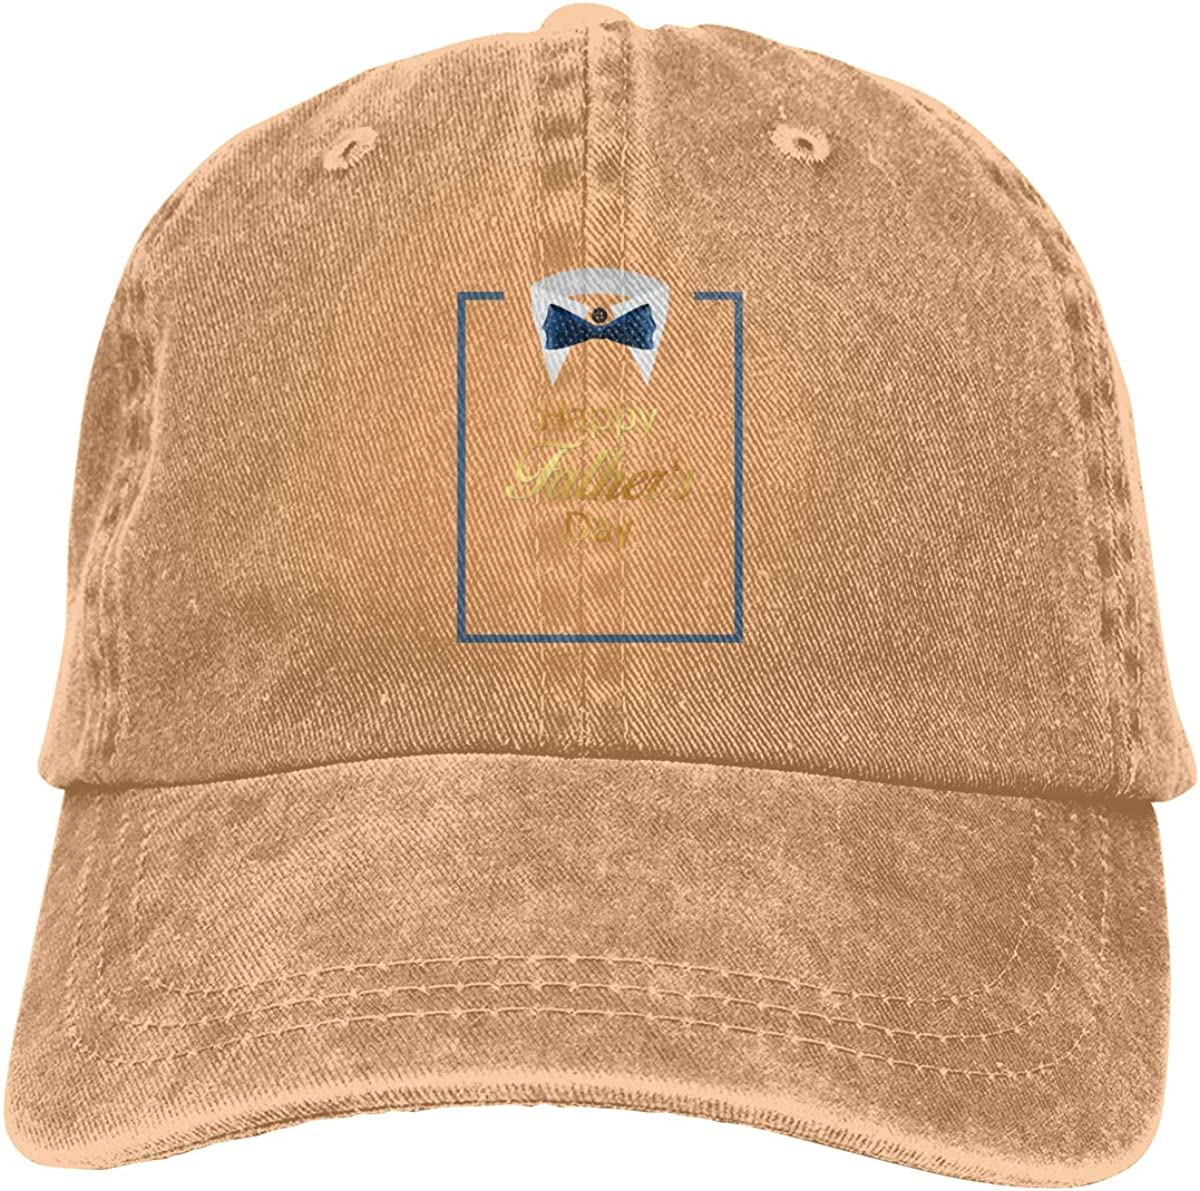 XZFQW Fathers Day Father Shirt Blue Square Trend Printing Cowboy Hat Fashion Baseball Cap for Men and Women Black